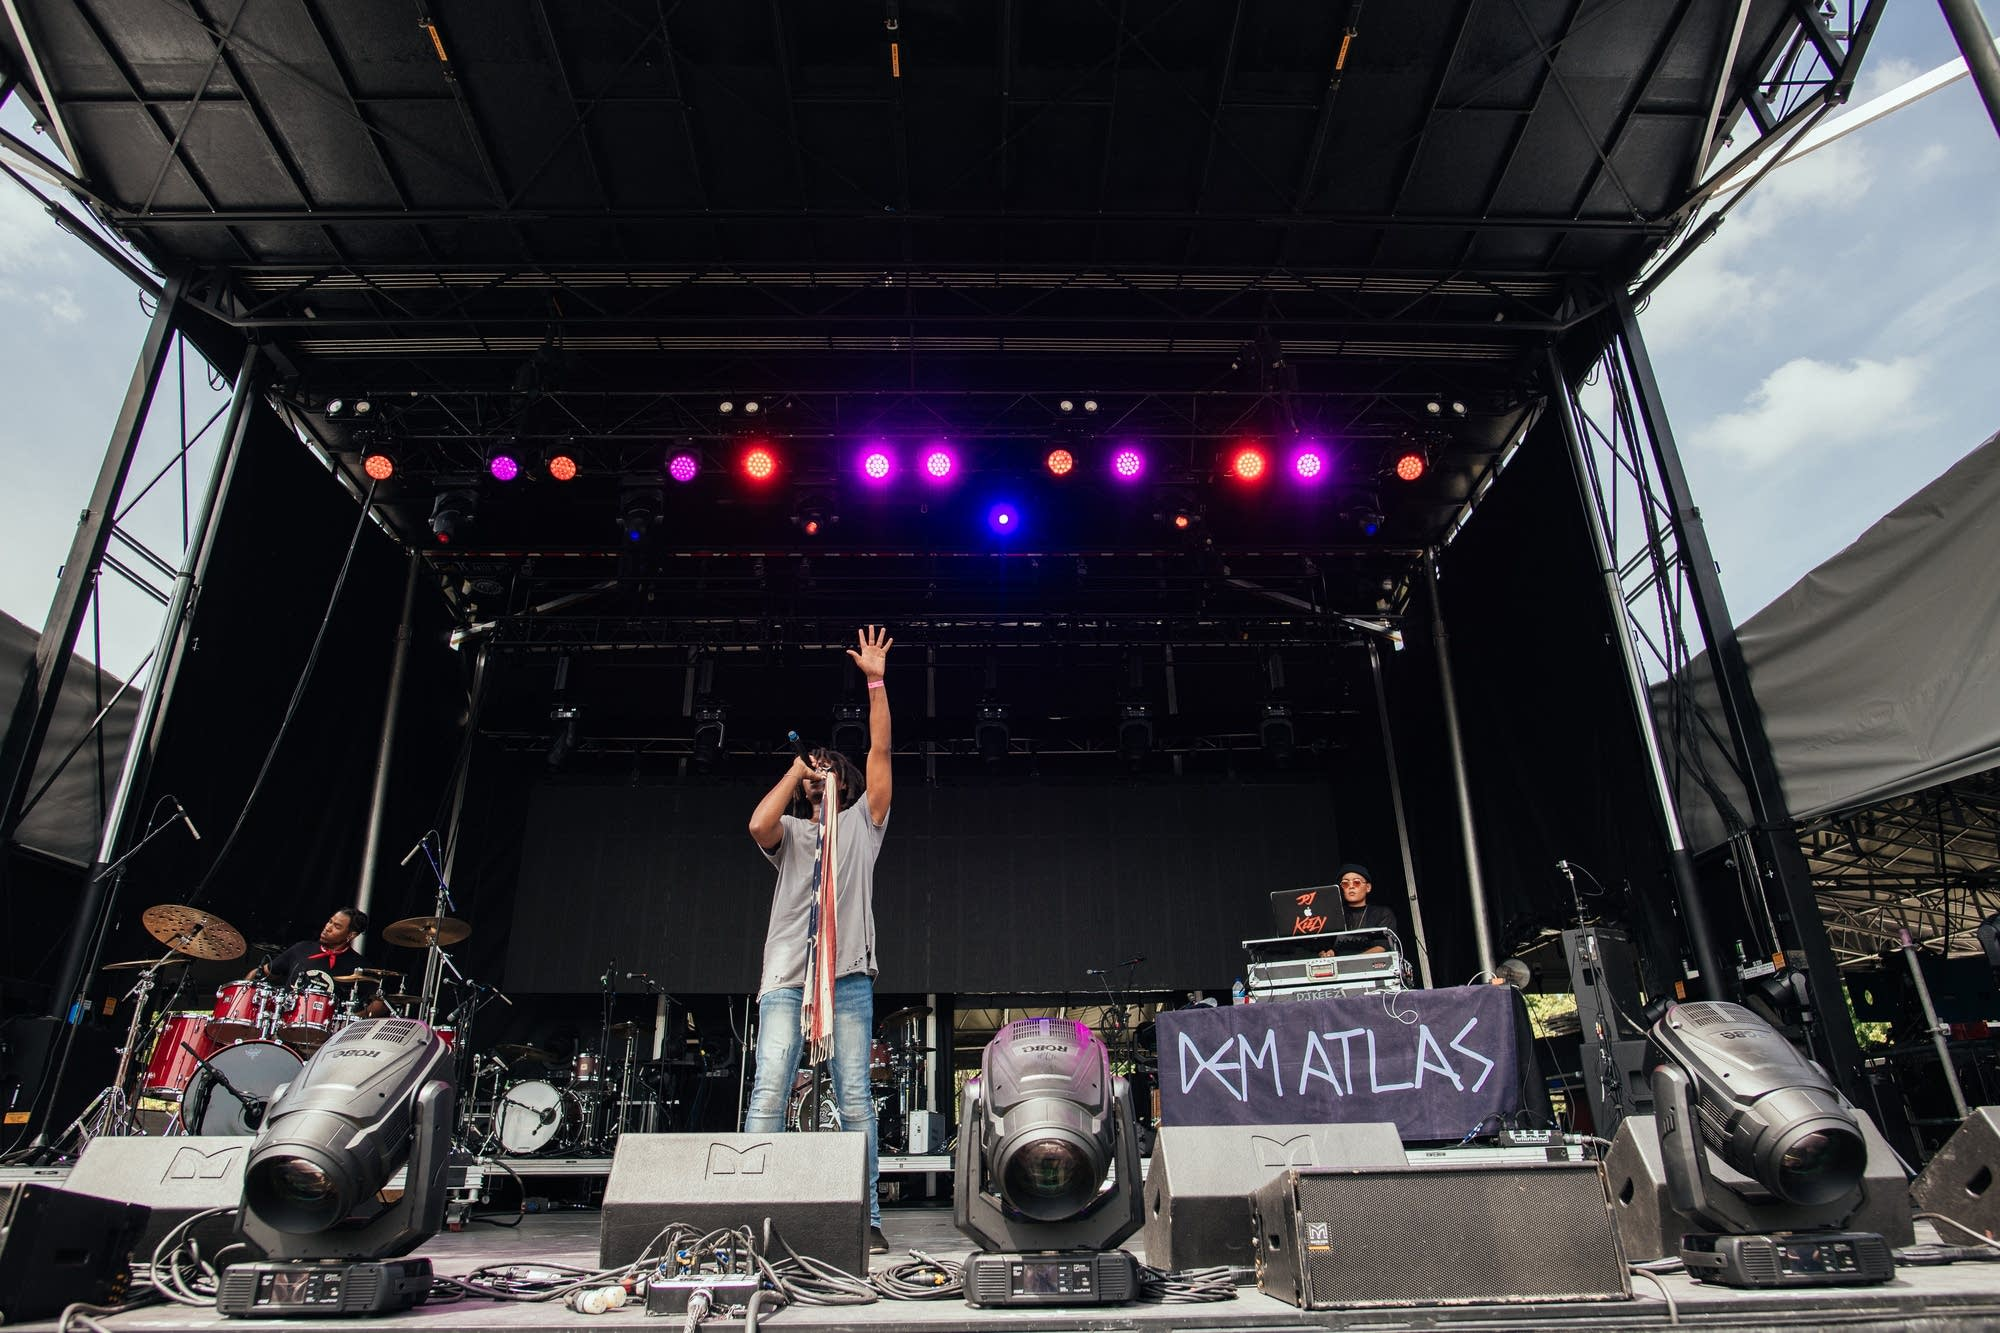 deM atlaS performs at Rock the Garden 2019